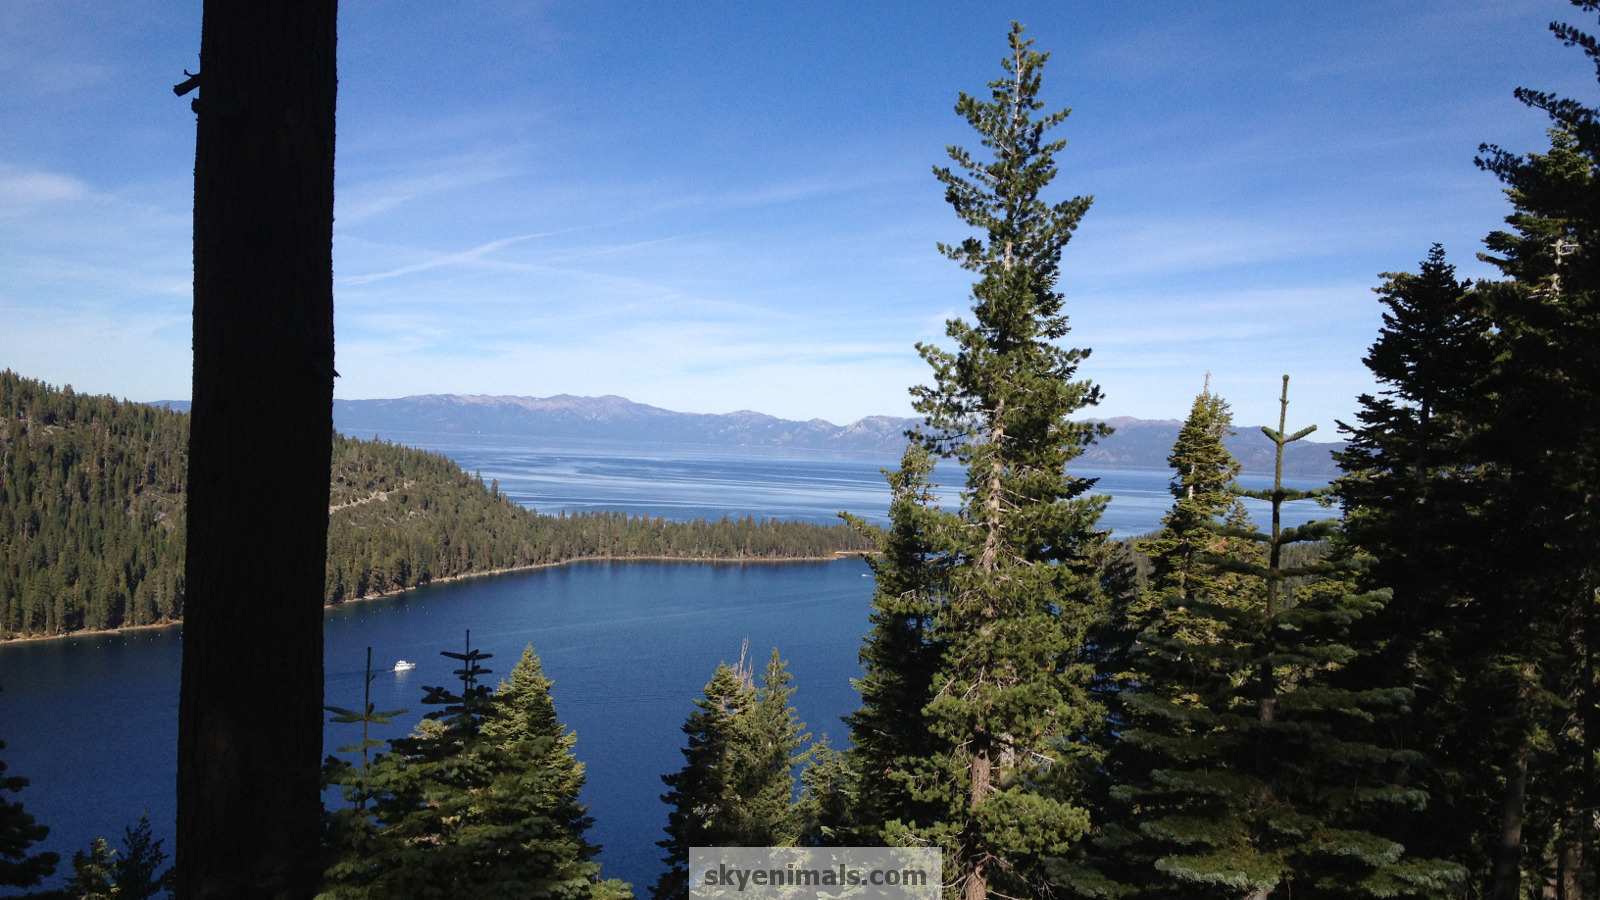 Lake Tahoe Wallpaper Images 1600x900